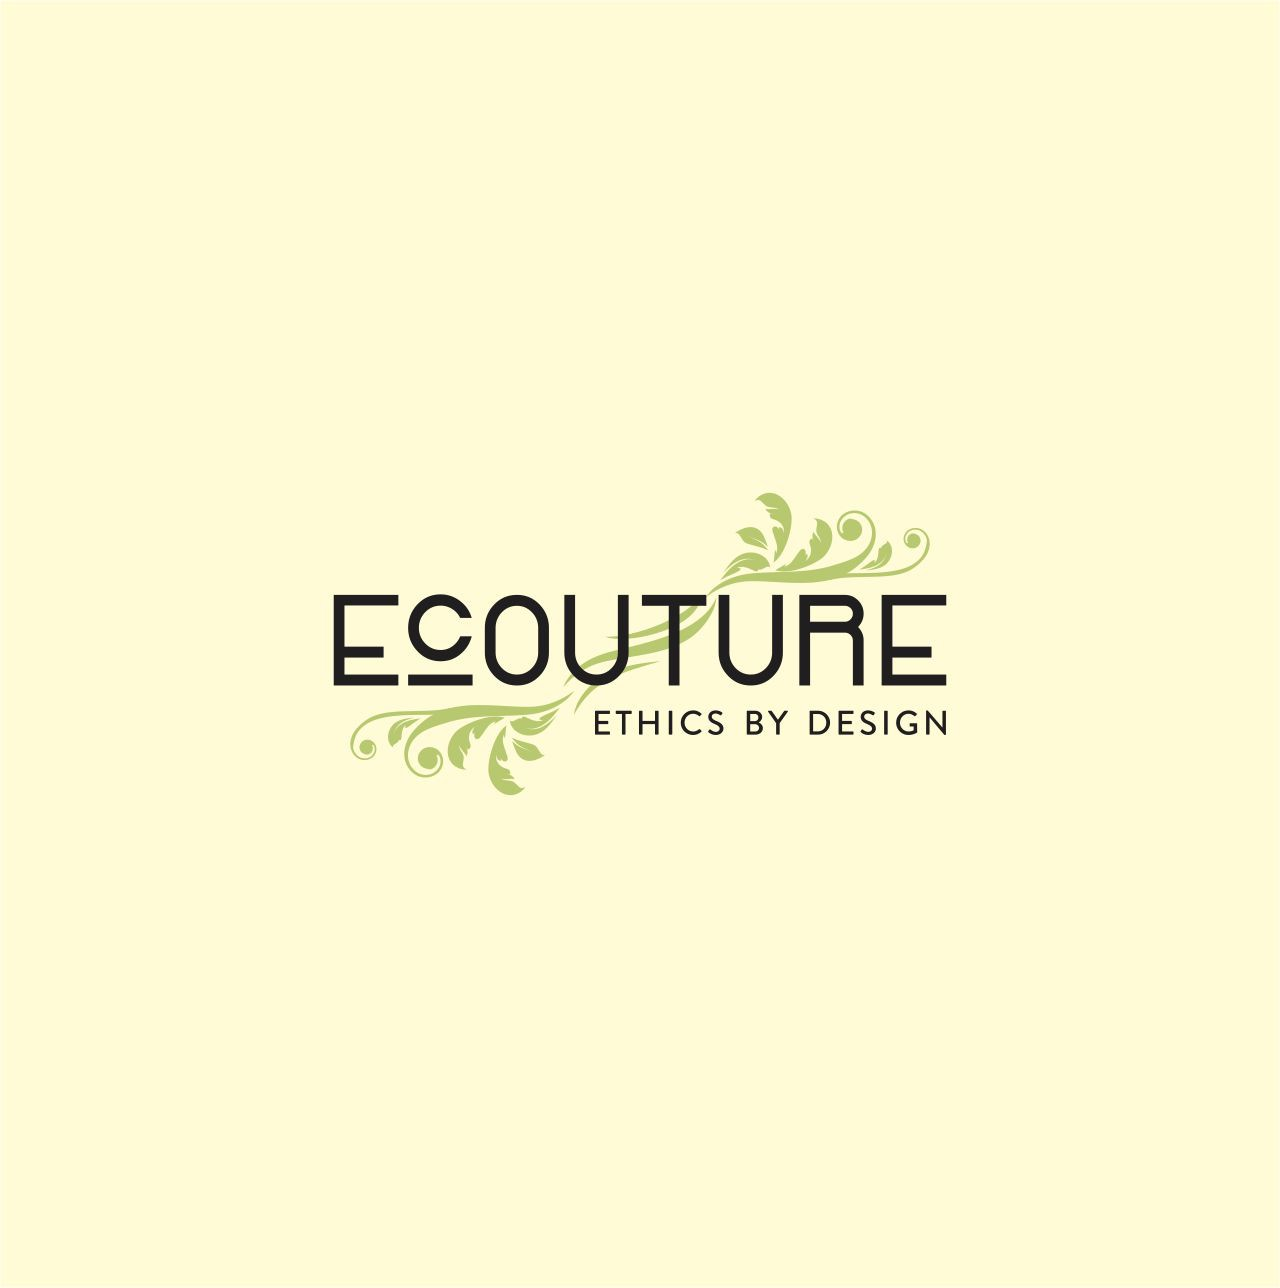 Redesign our logo - Ecouture is the #1 sustainable fashion brand in Scandinavia